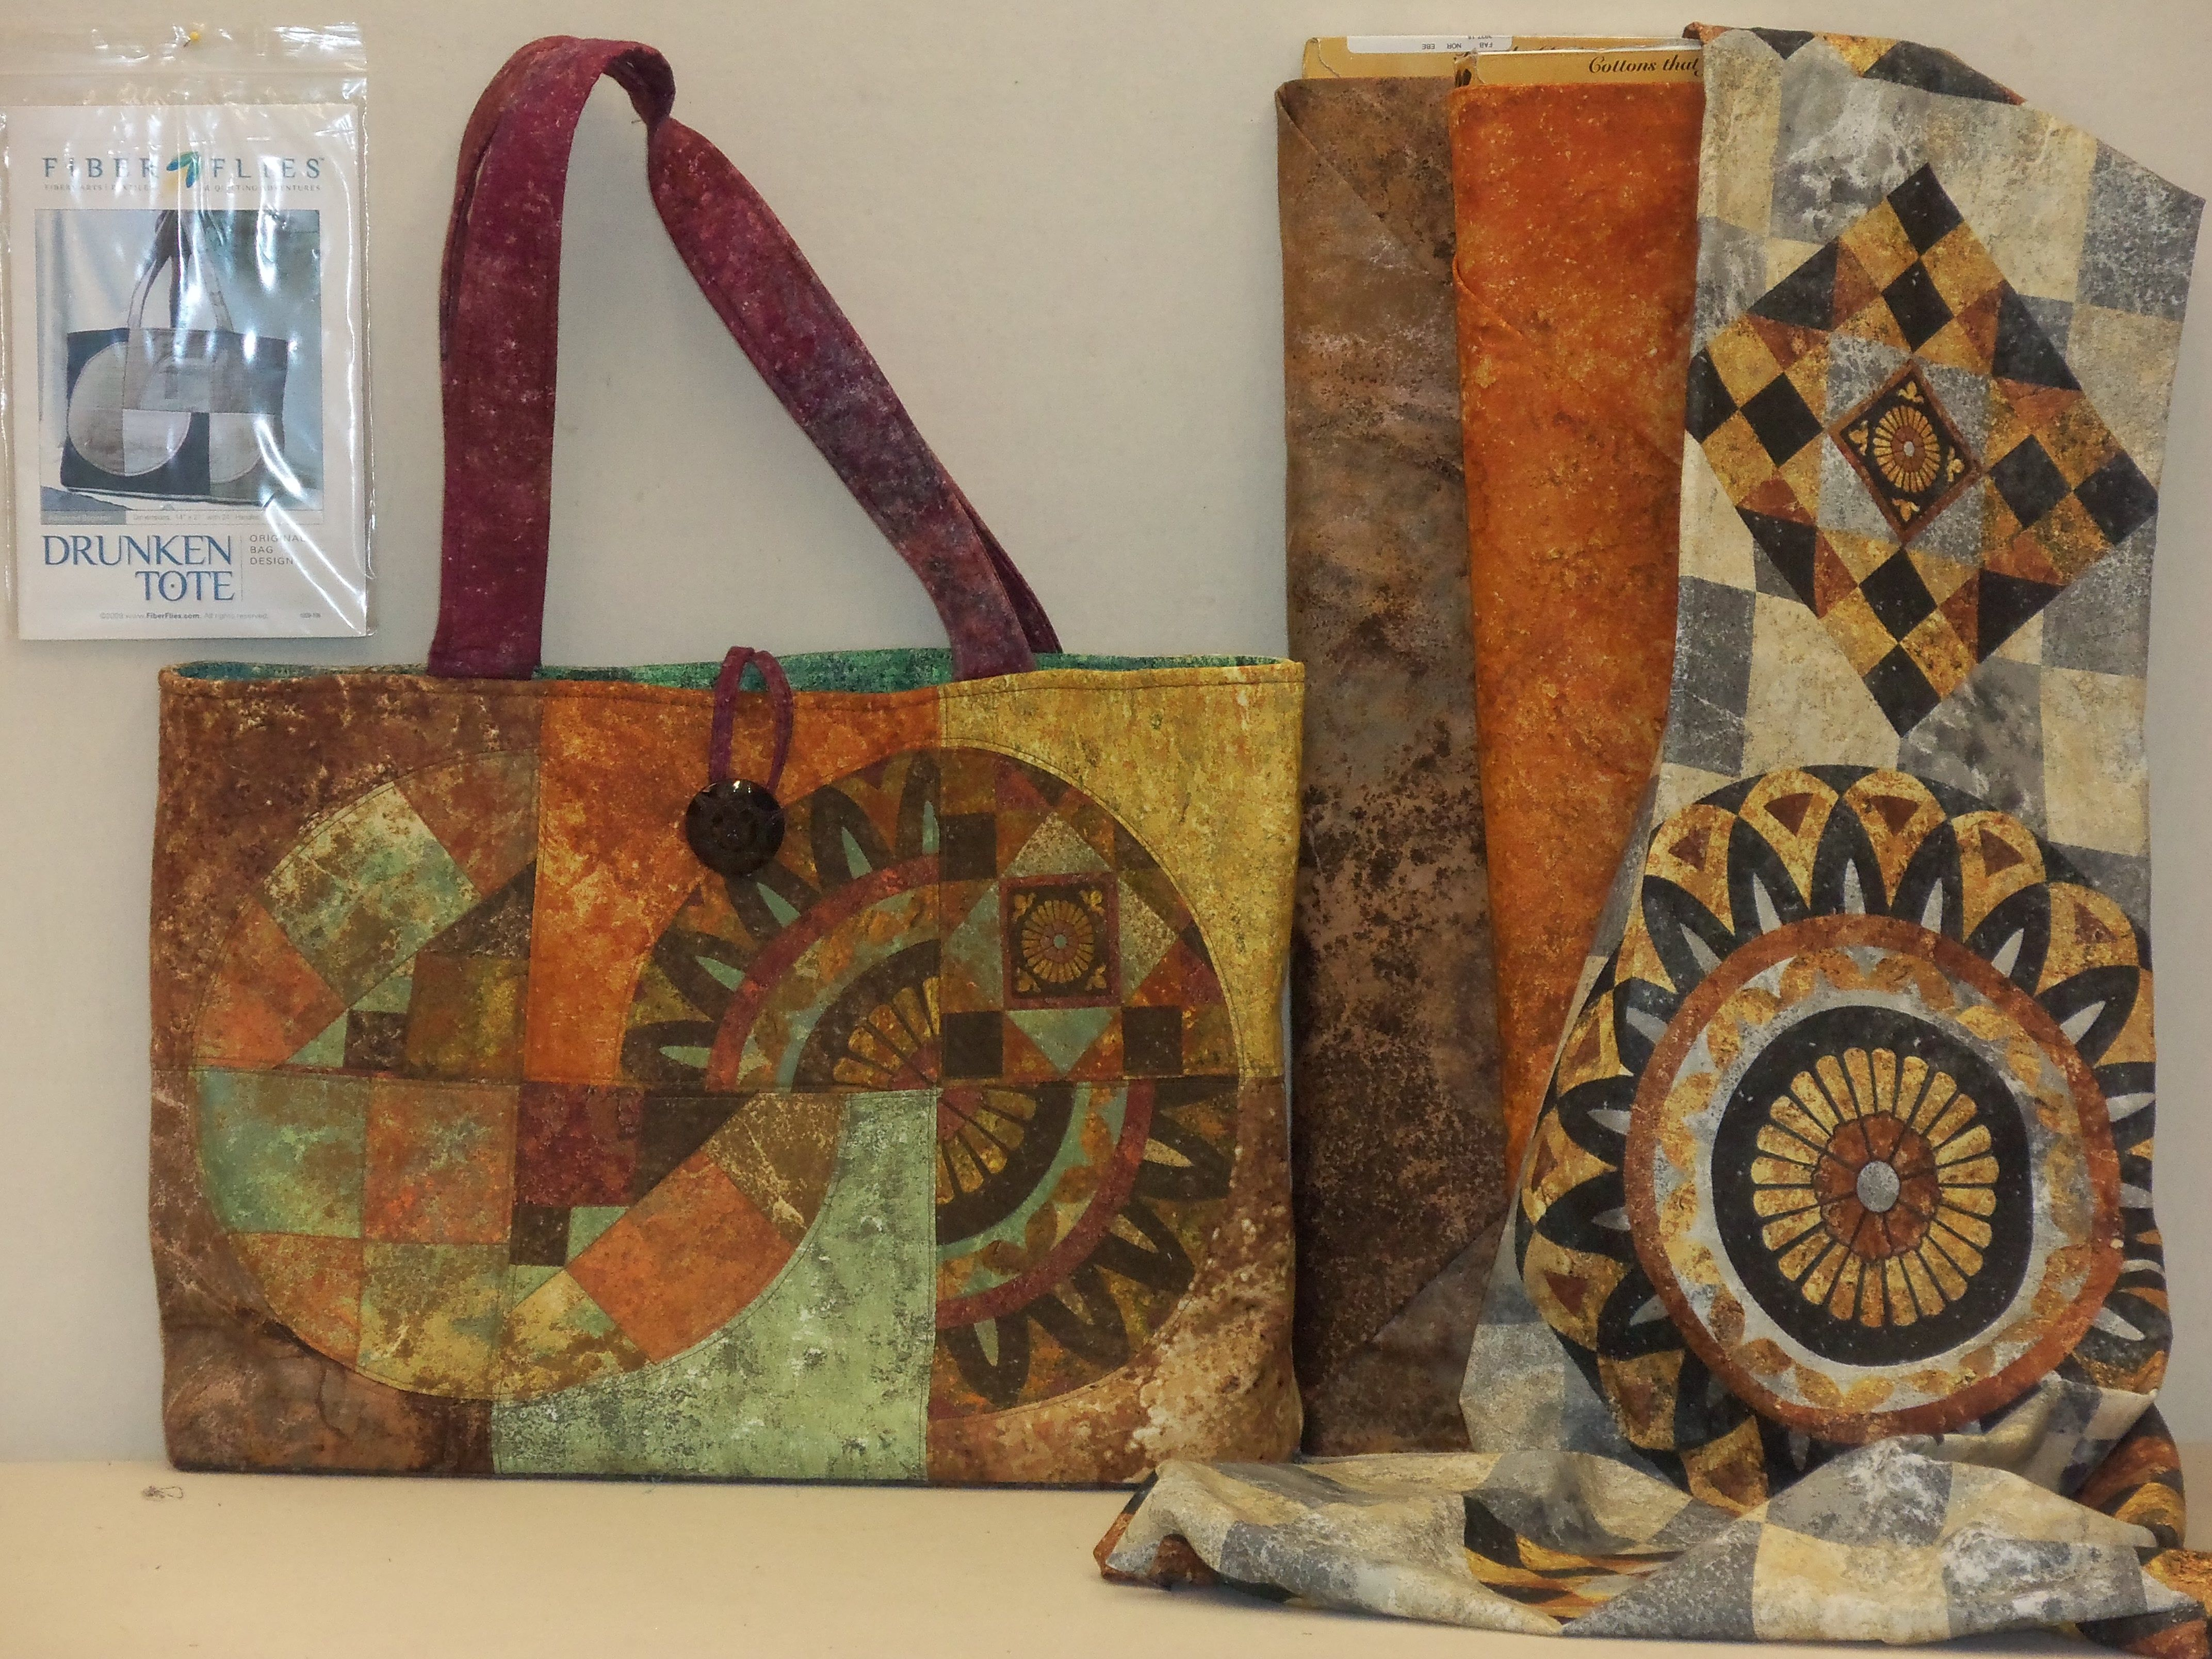 Awesome purse/tote bag from the stonehenge collection